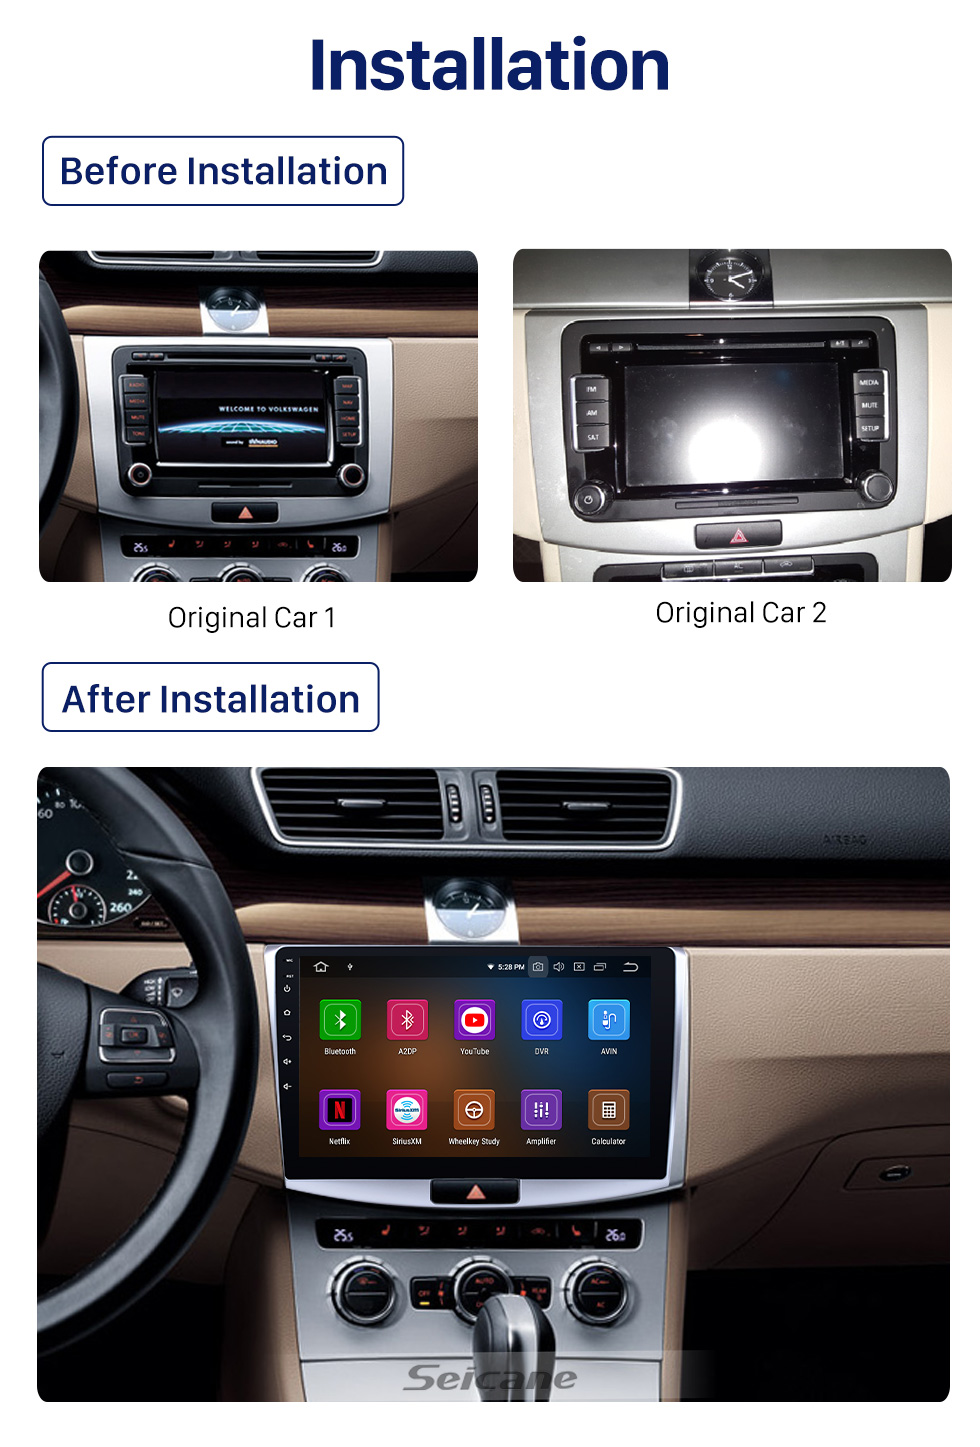 Seicane 10.1 inch Android 10.0 For 2012 2013 2014 VW Volkswagen Magotan Radio Upgrade 1024*600 Multi-touch Screen GPS Navigation Stereo CD Player SWC WiFi OBD2 Bluetooth Music